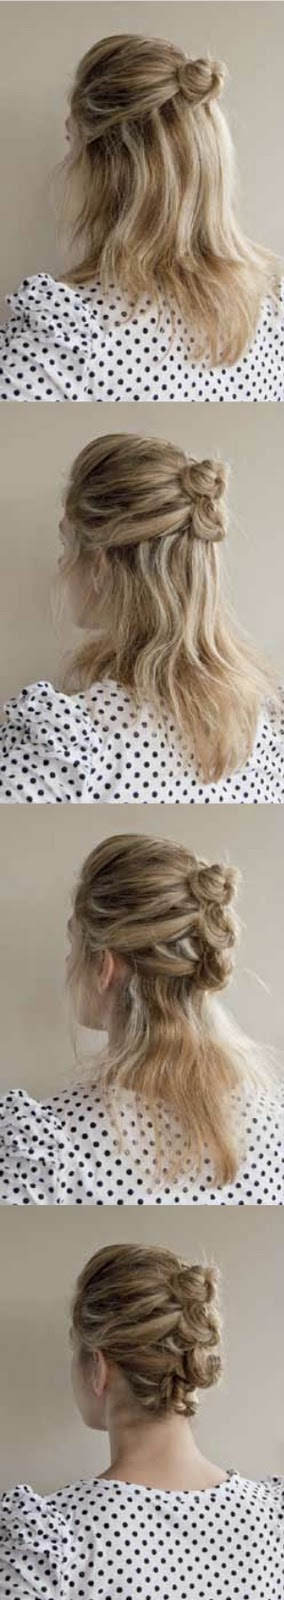 Ways To Pin Up Your Hair. Twist the section around your